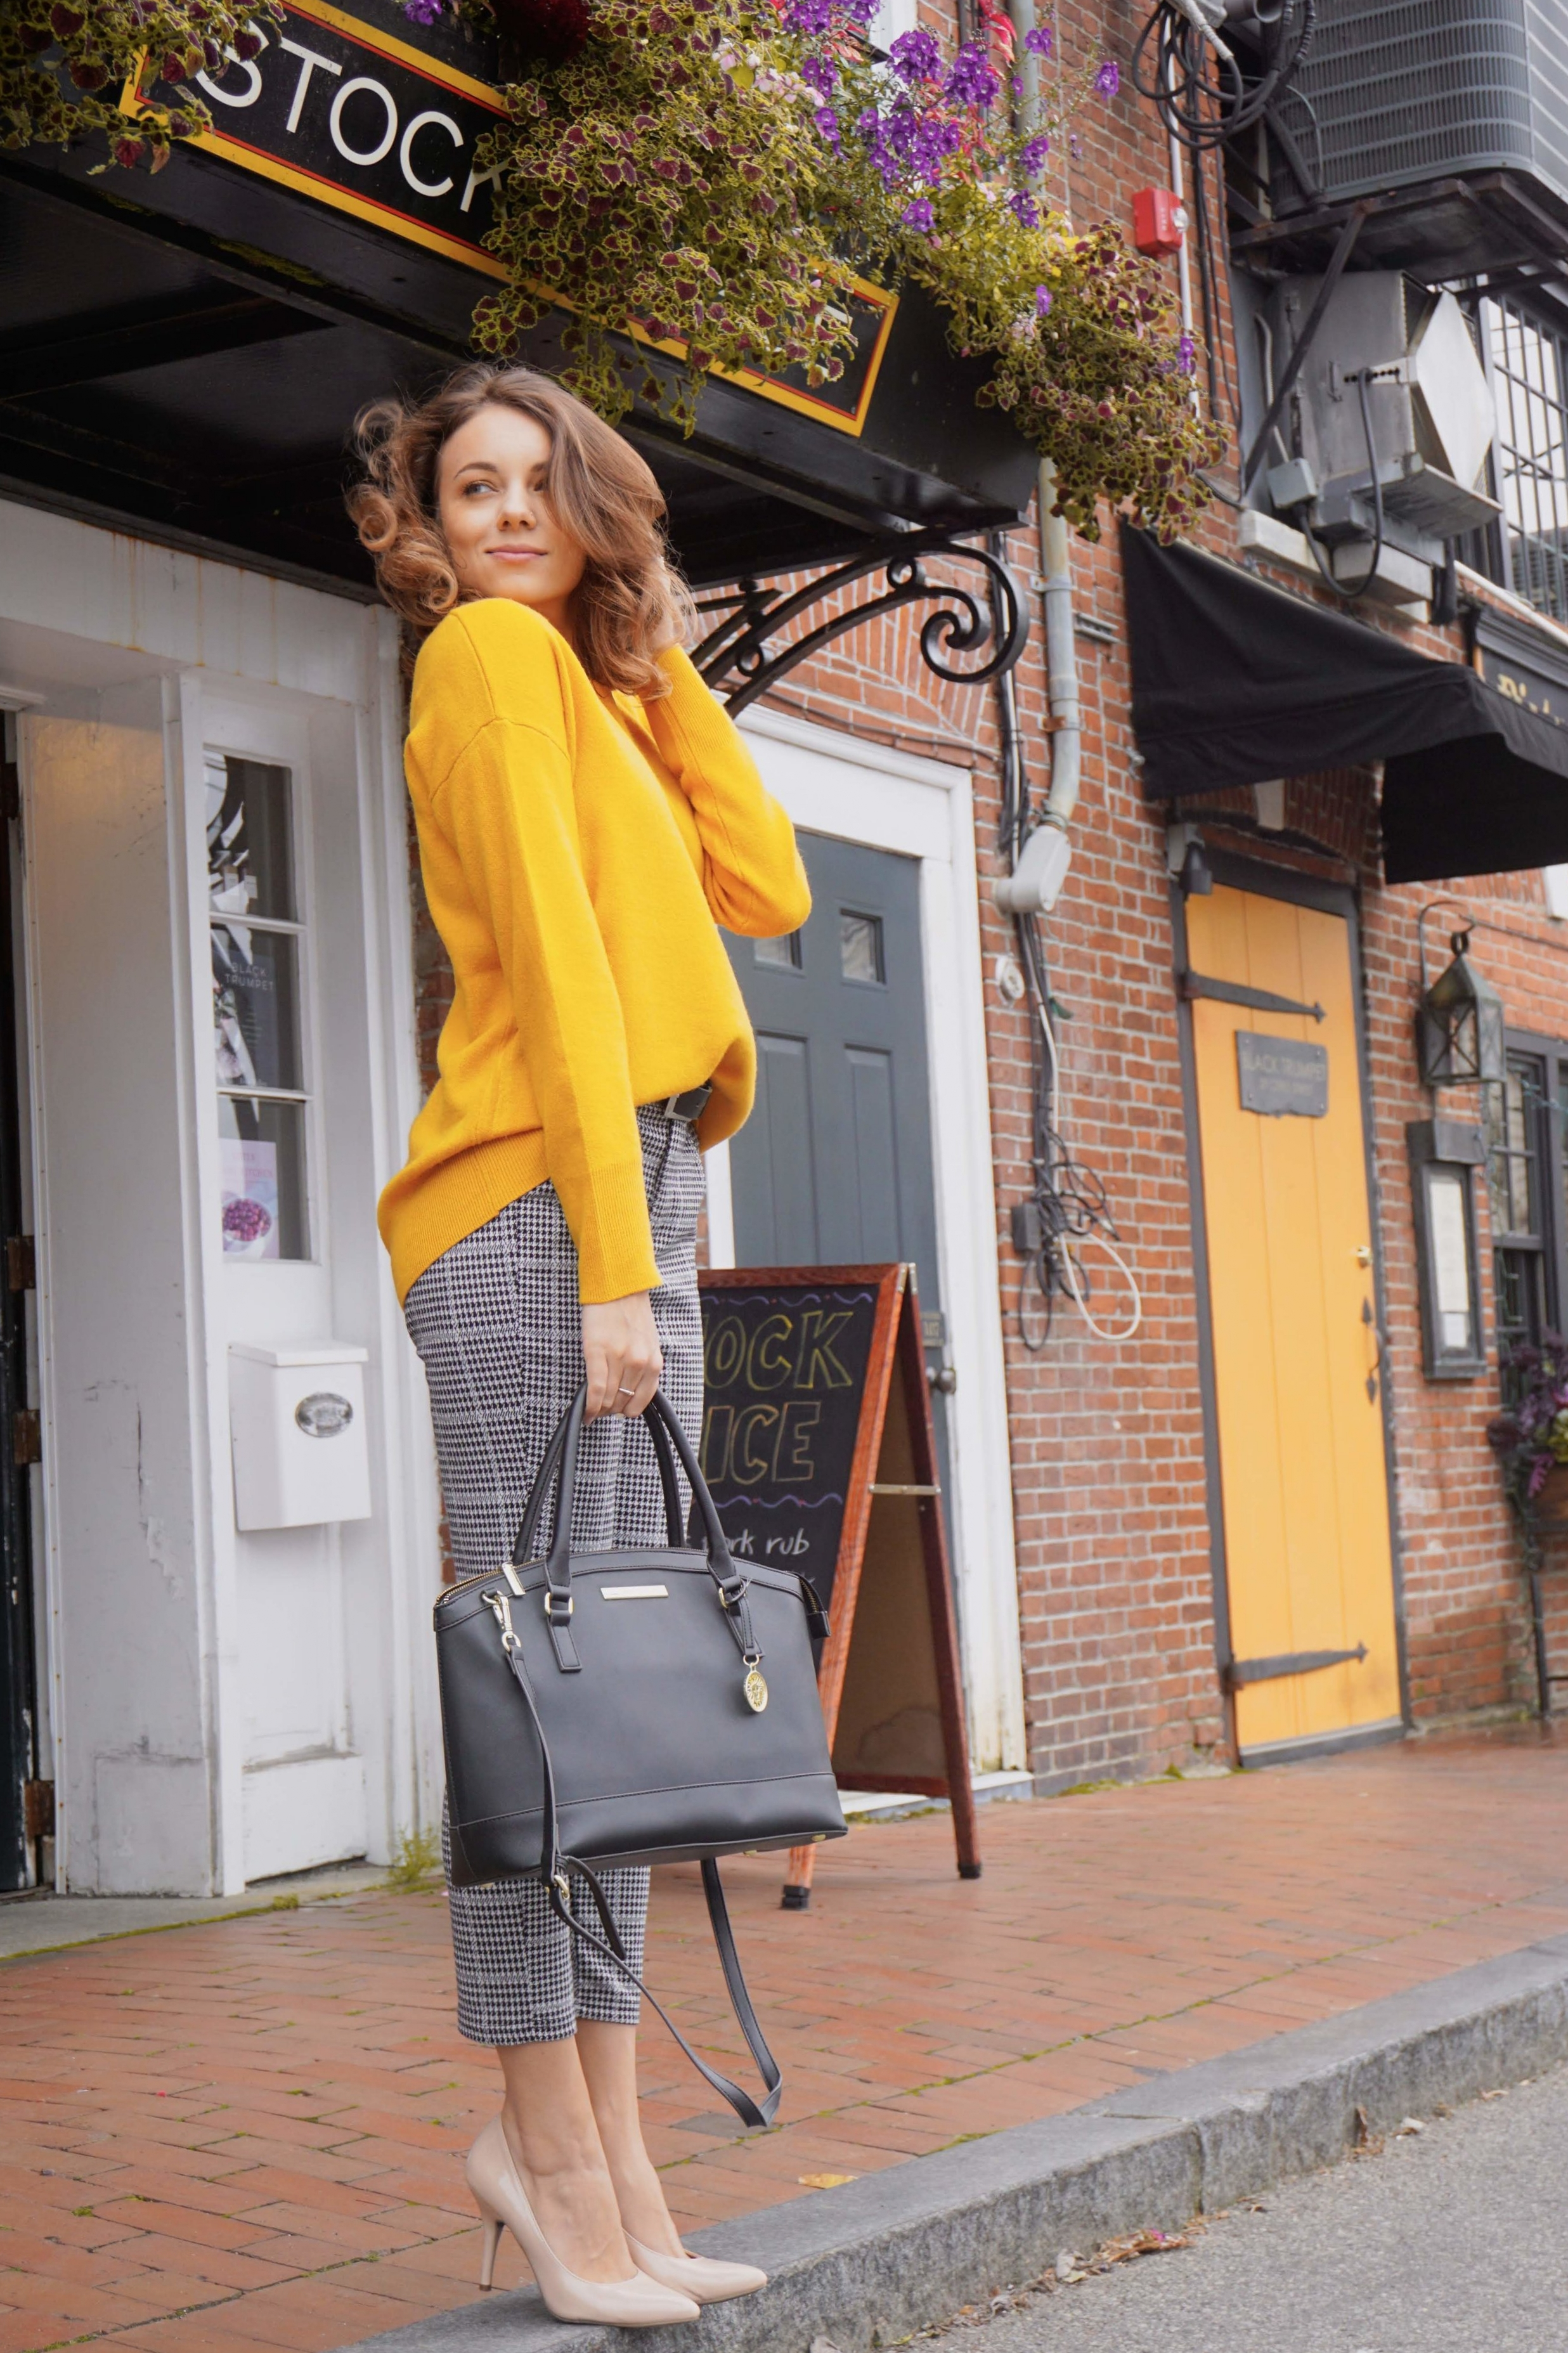 Autumn outfit inspiration: mustard colour baggy sweater, black and white pants, nude pumps, and black bag.